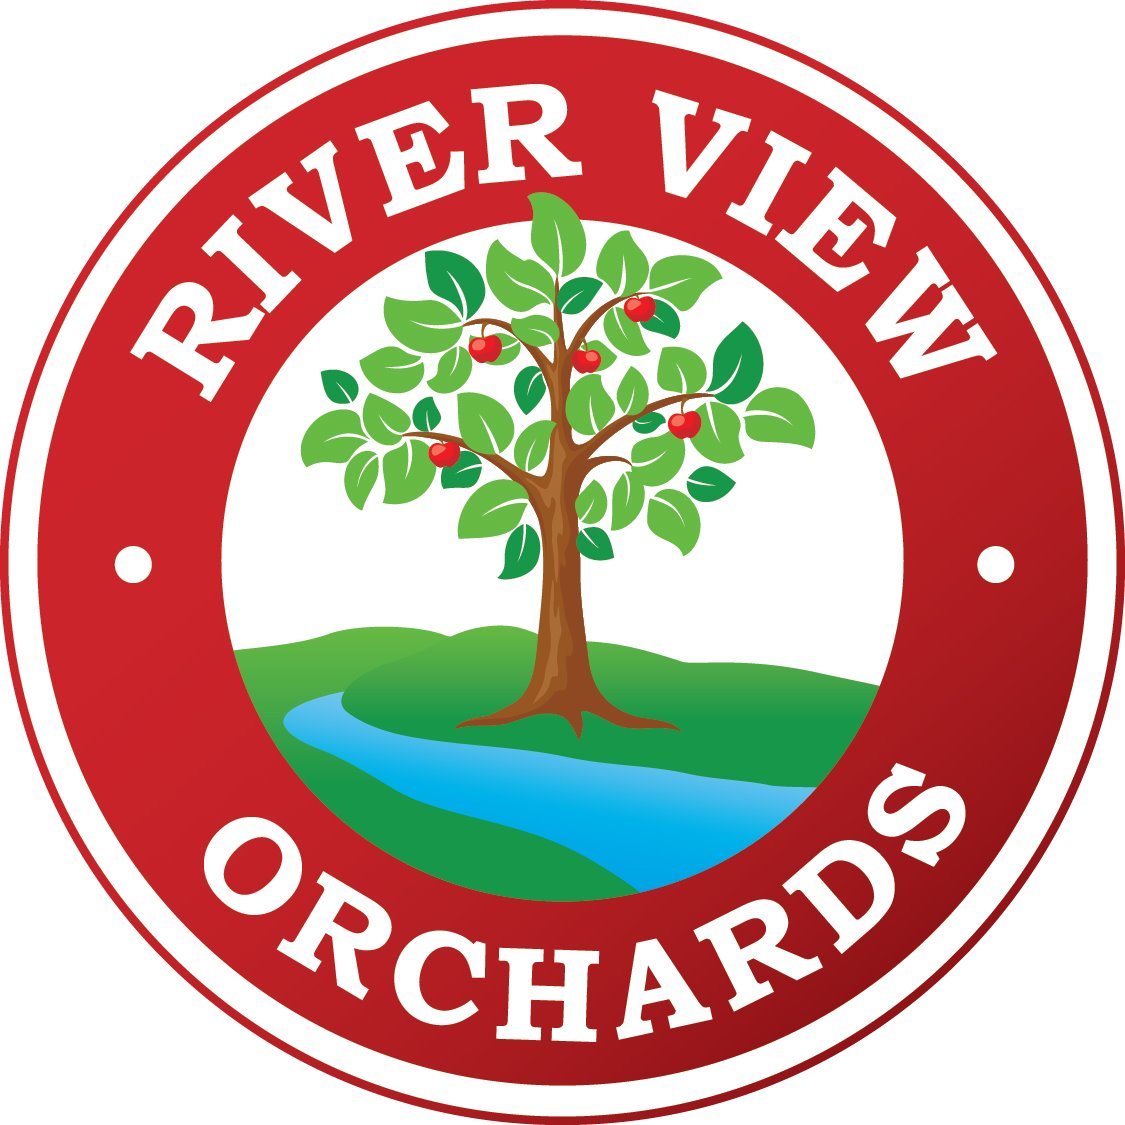 RiverViewOrchard